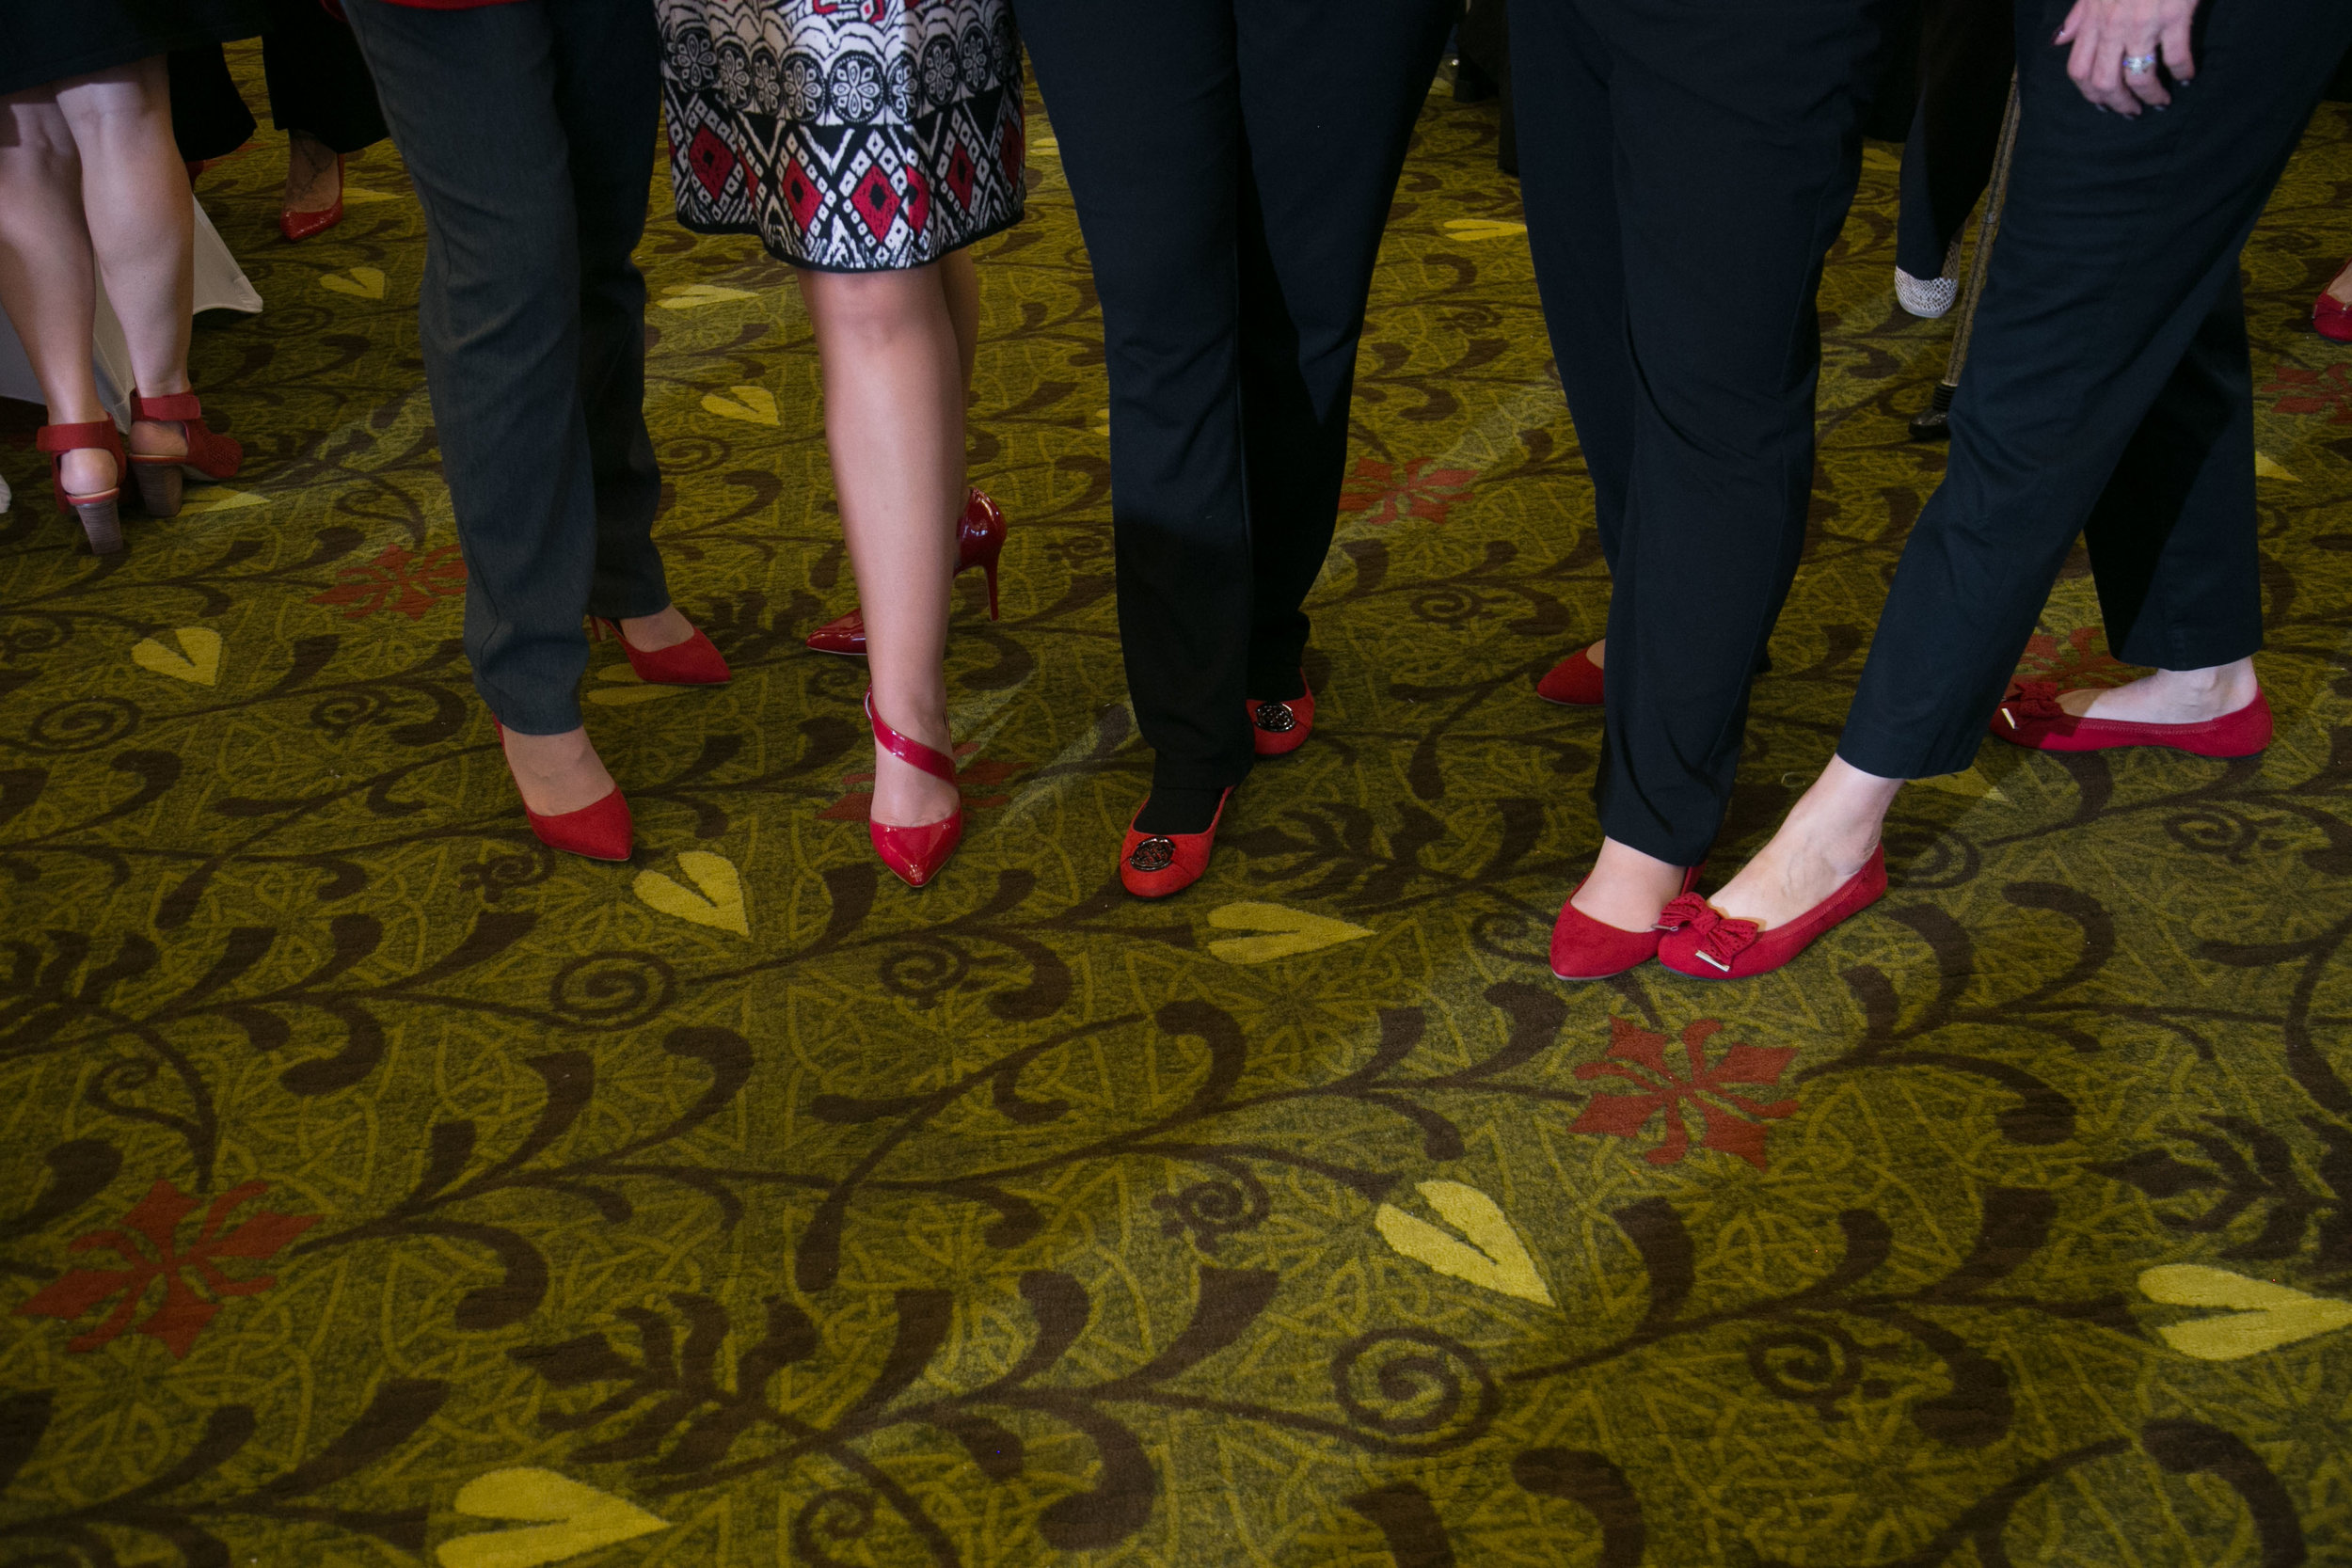 LightMaster-Studios-BWNice-Monroe-Chapter-Red-Shoes-Event-Camelback-lodge-2018-5340.jpg